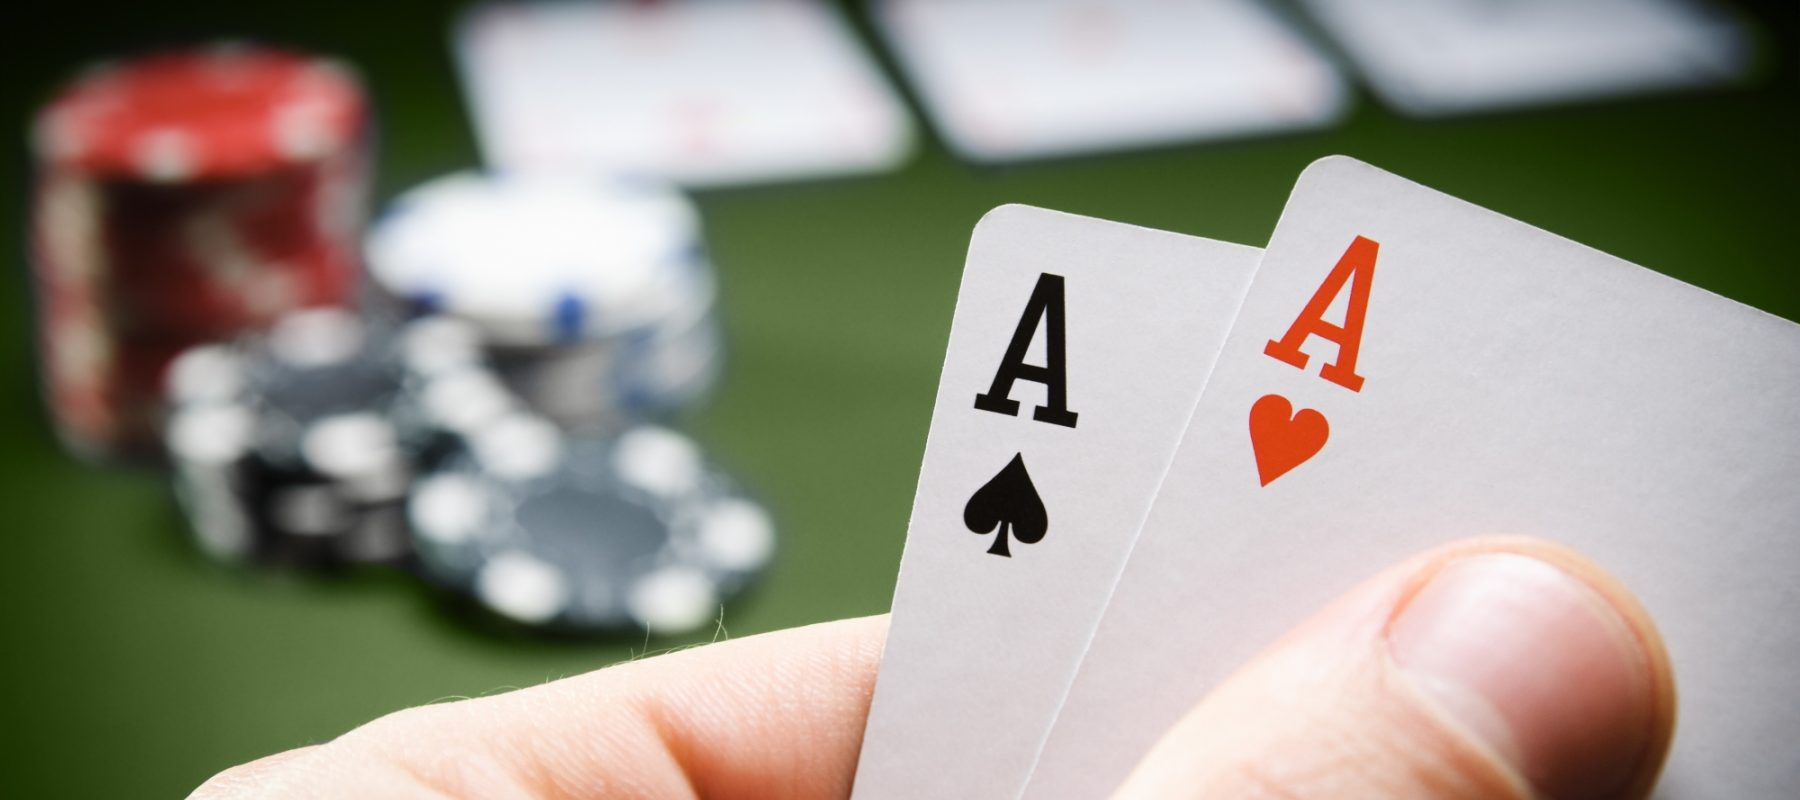 online poker games. Enjoy the game, but don't play too much, as online gambling addiction is dangerous to you!